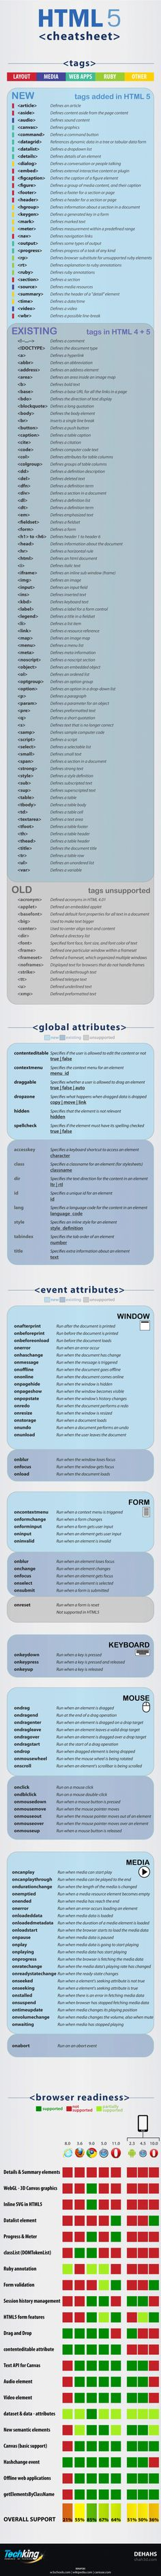 Ultimate HTML5 Cheatsheat #Infographic